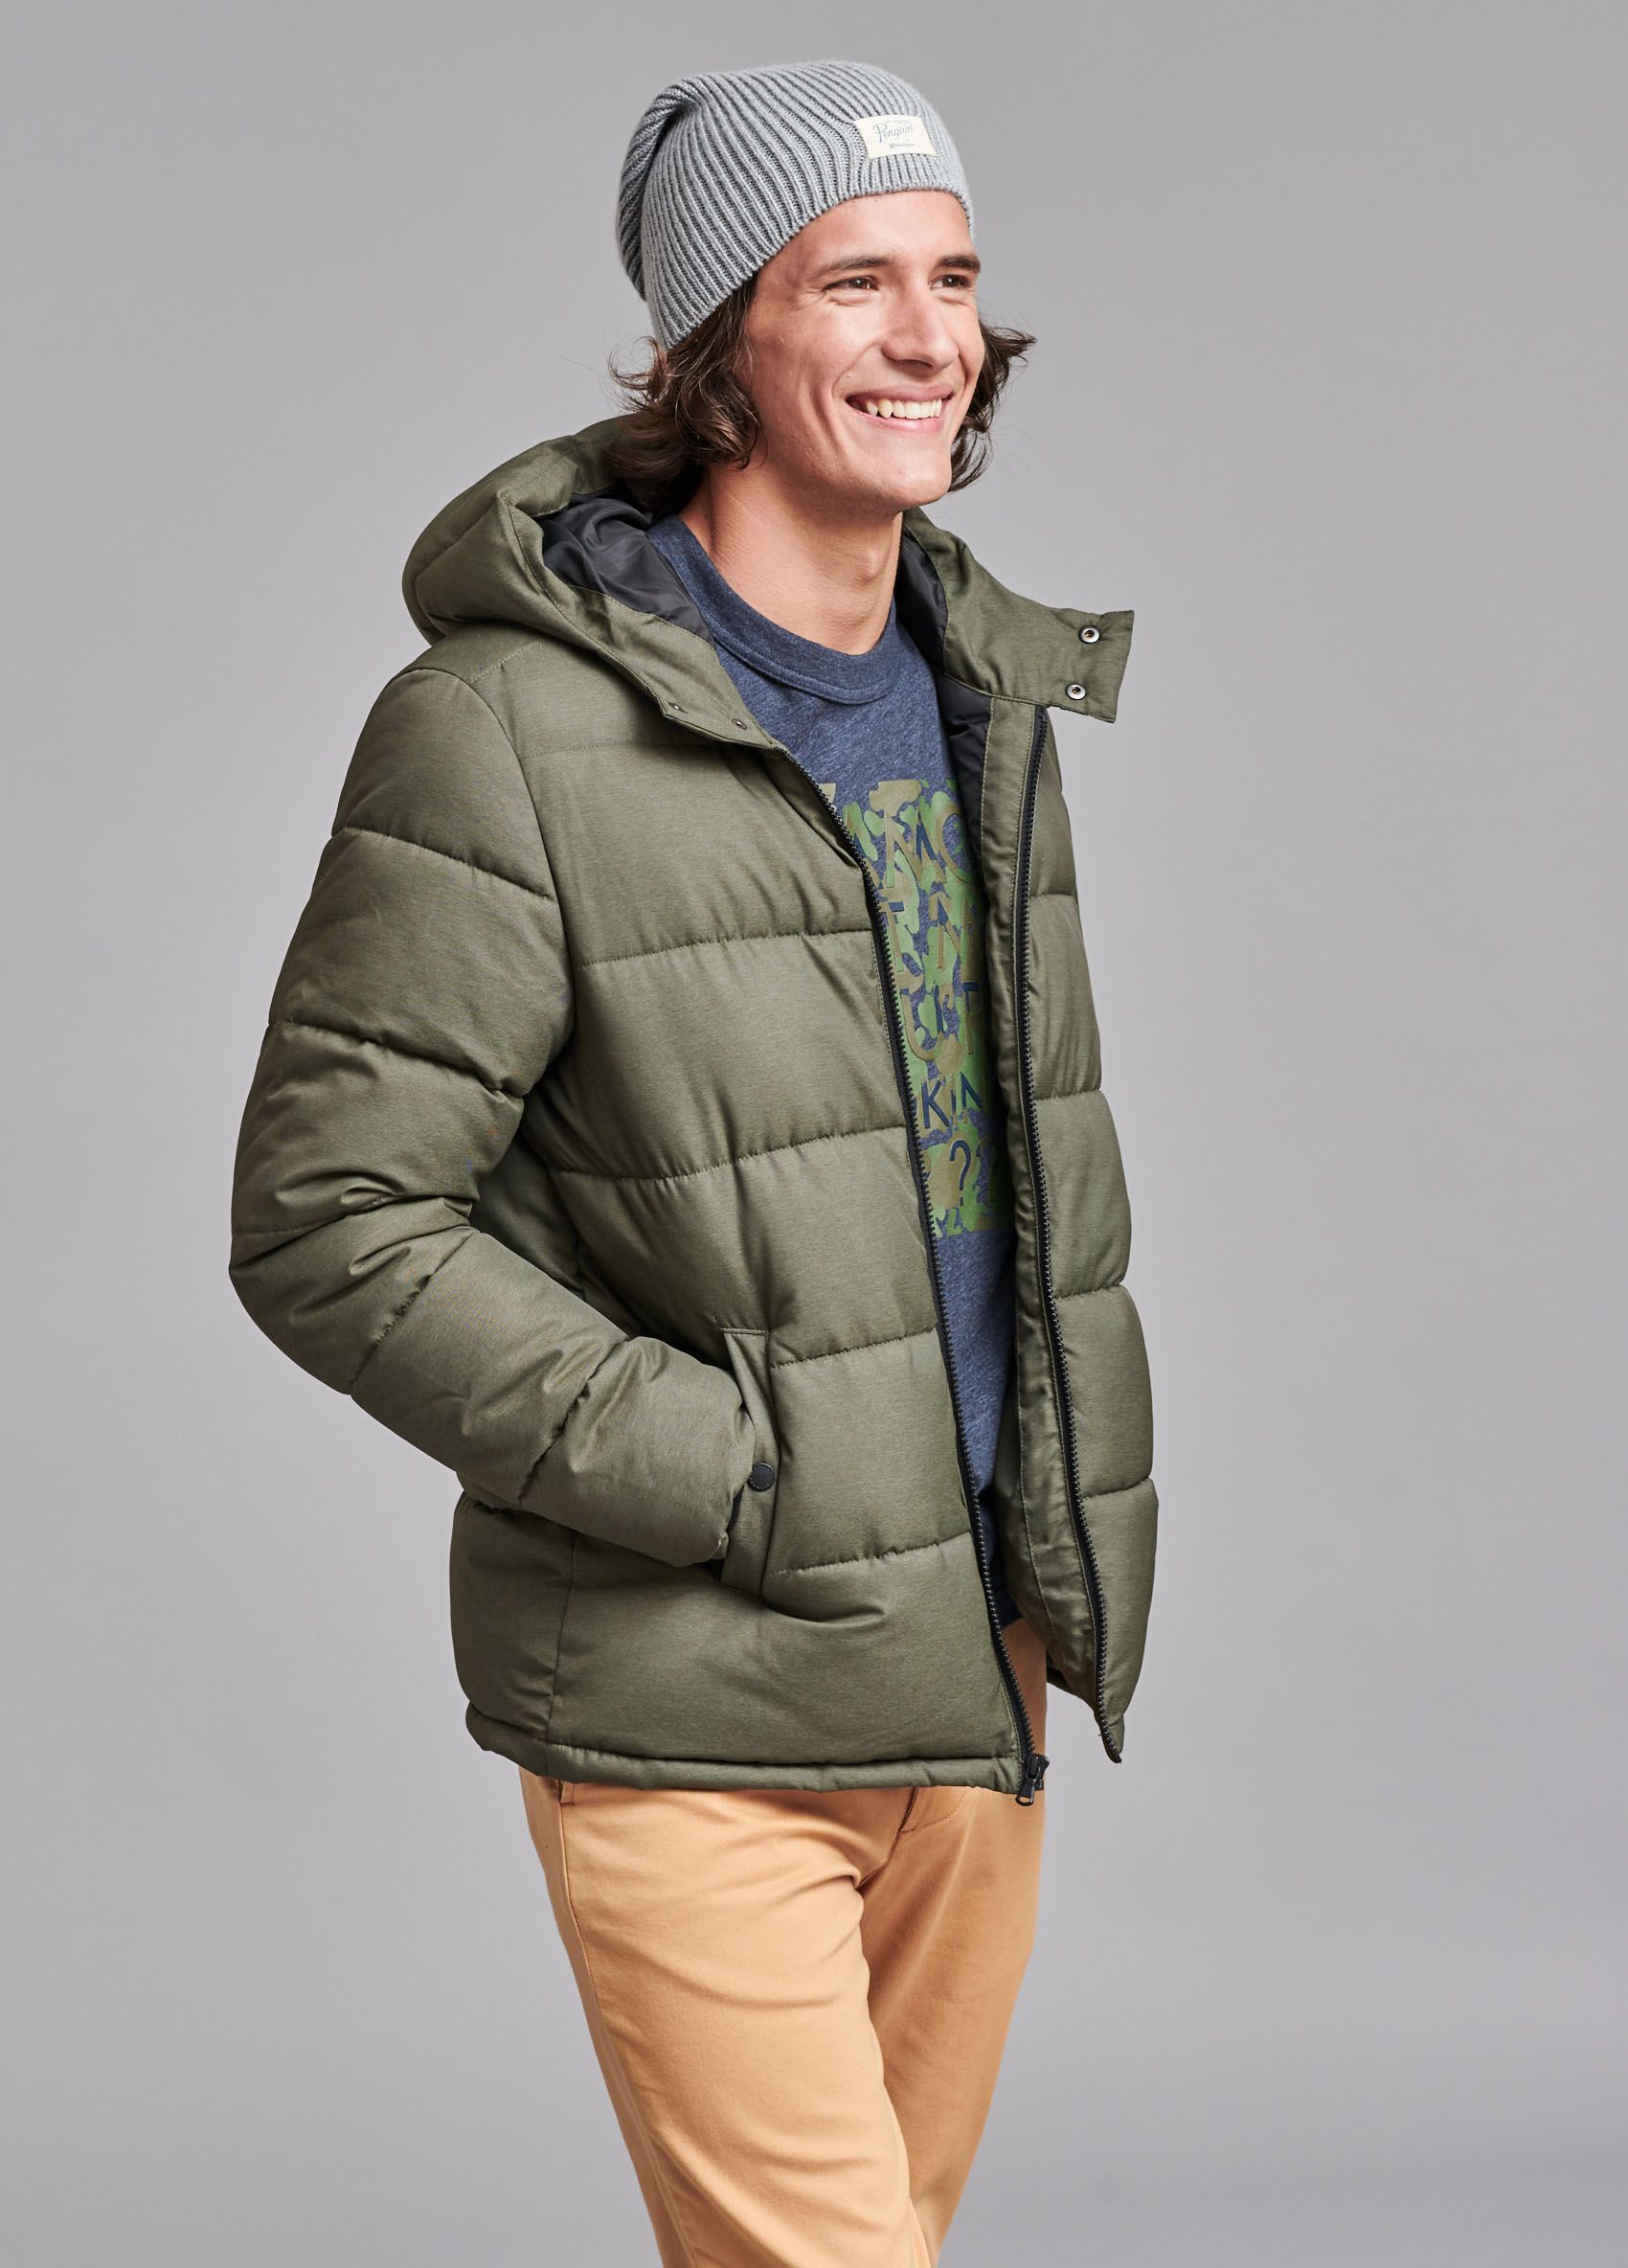 penguin_insulated-melange-puffer-jacket_53-18-2019__picture-8931